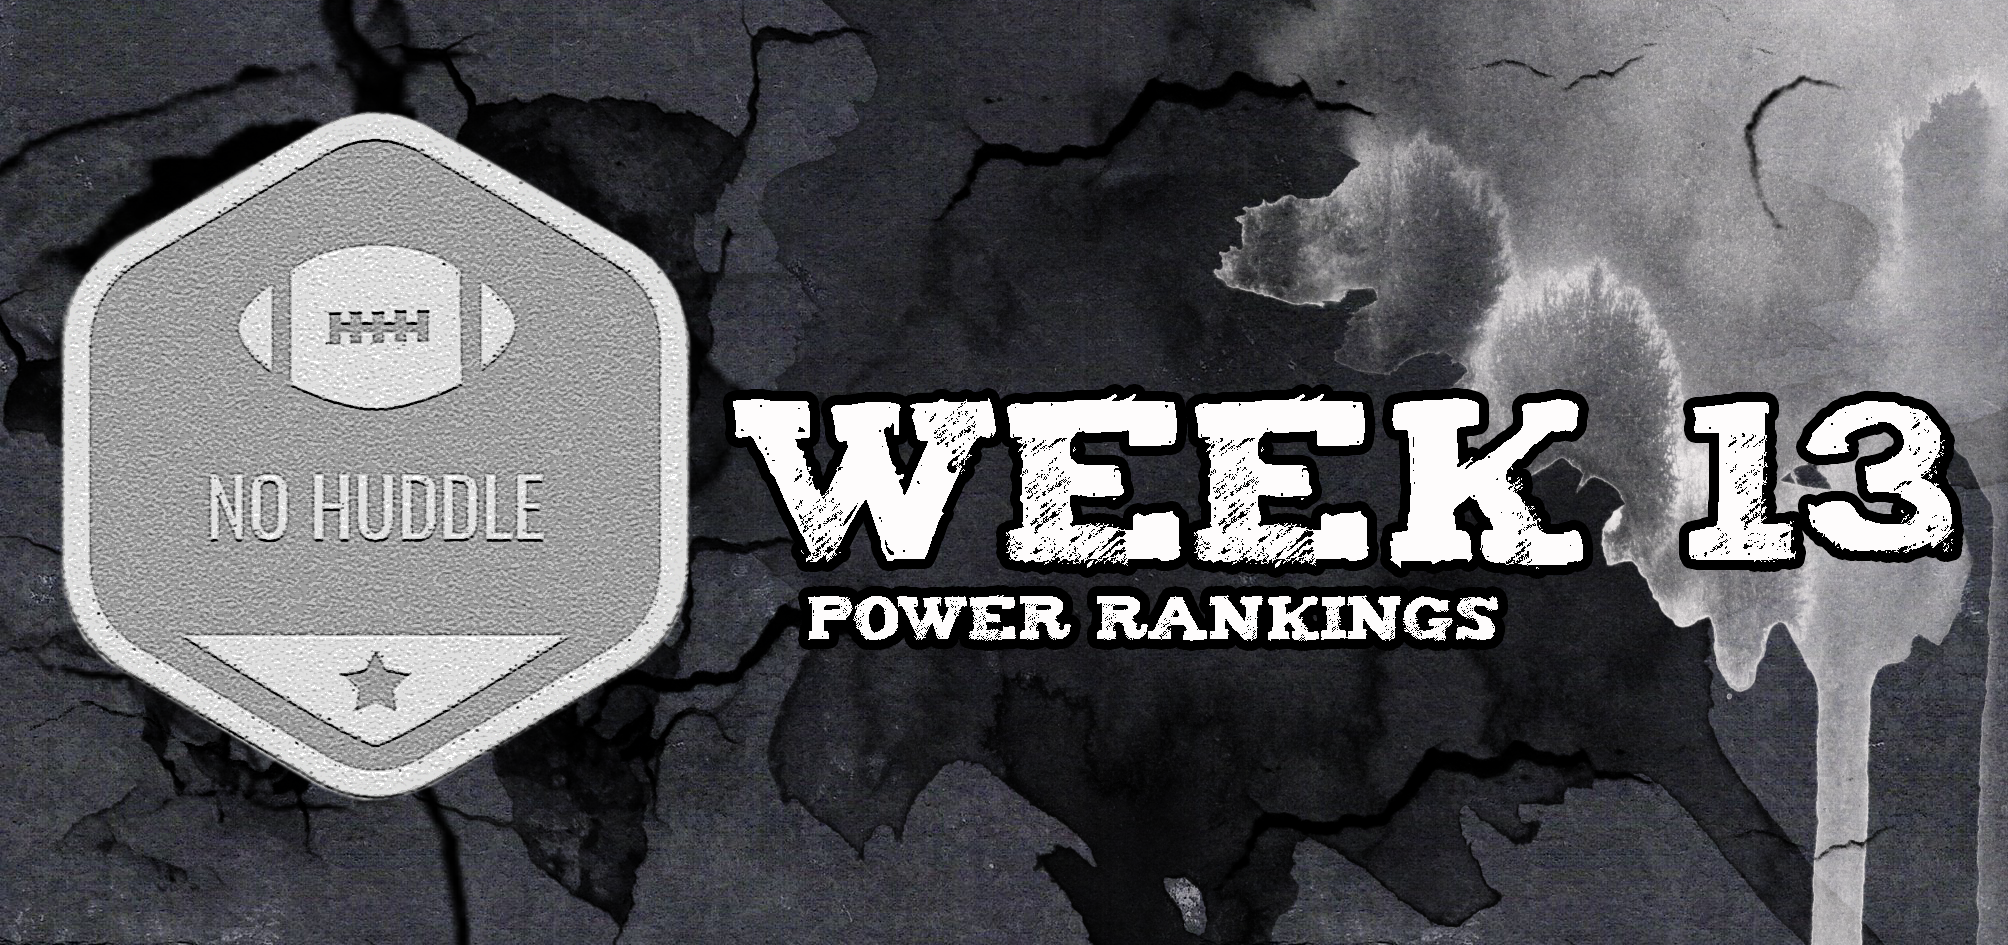 Power Rankings: Semana 13